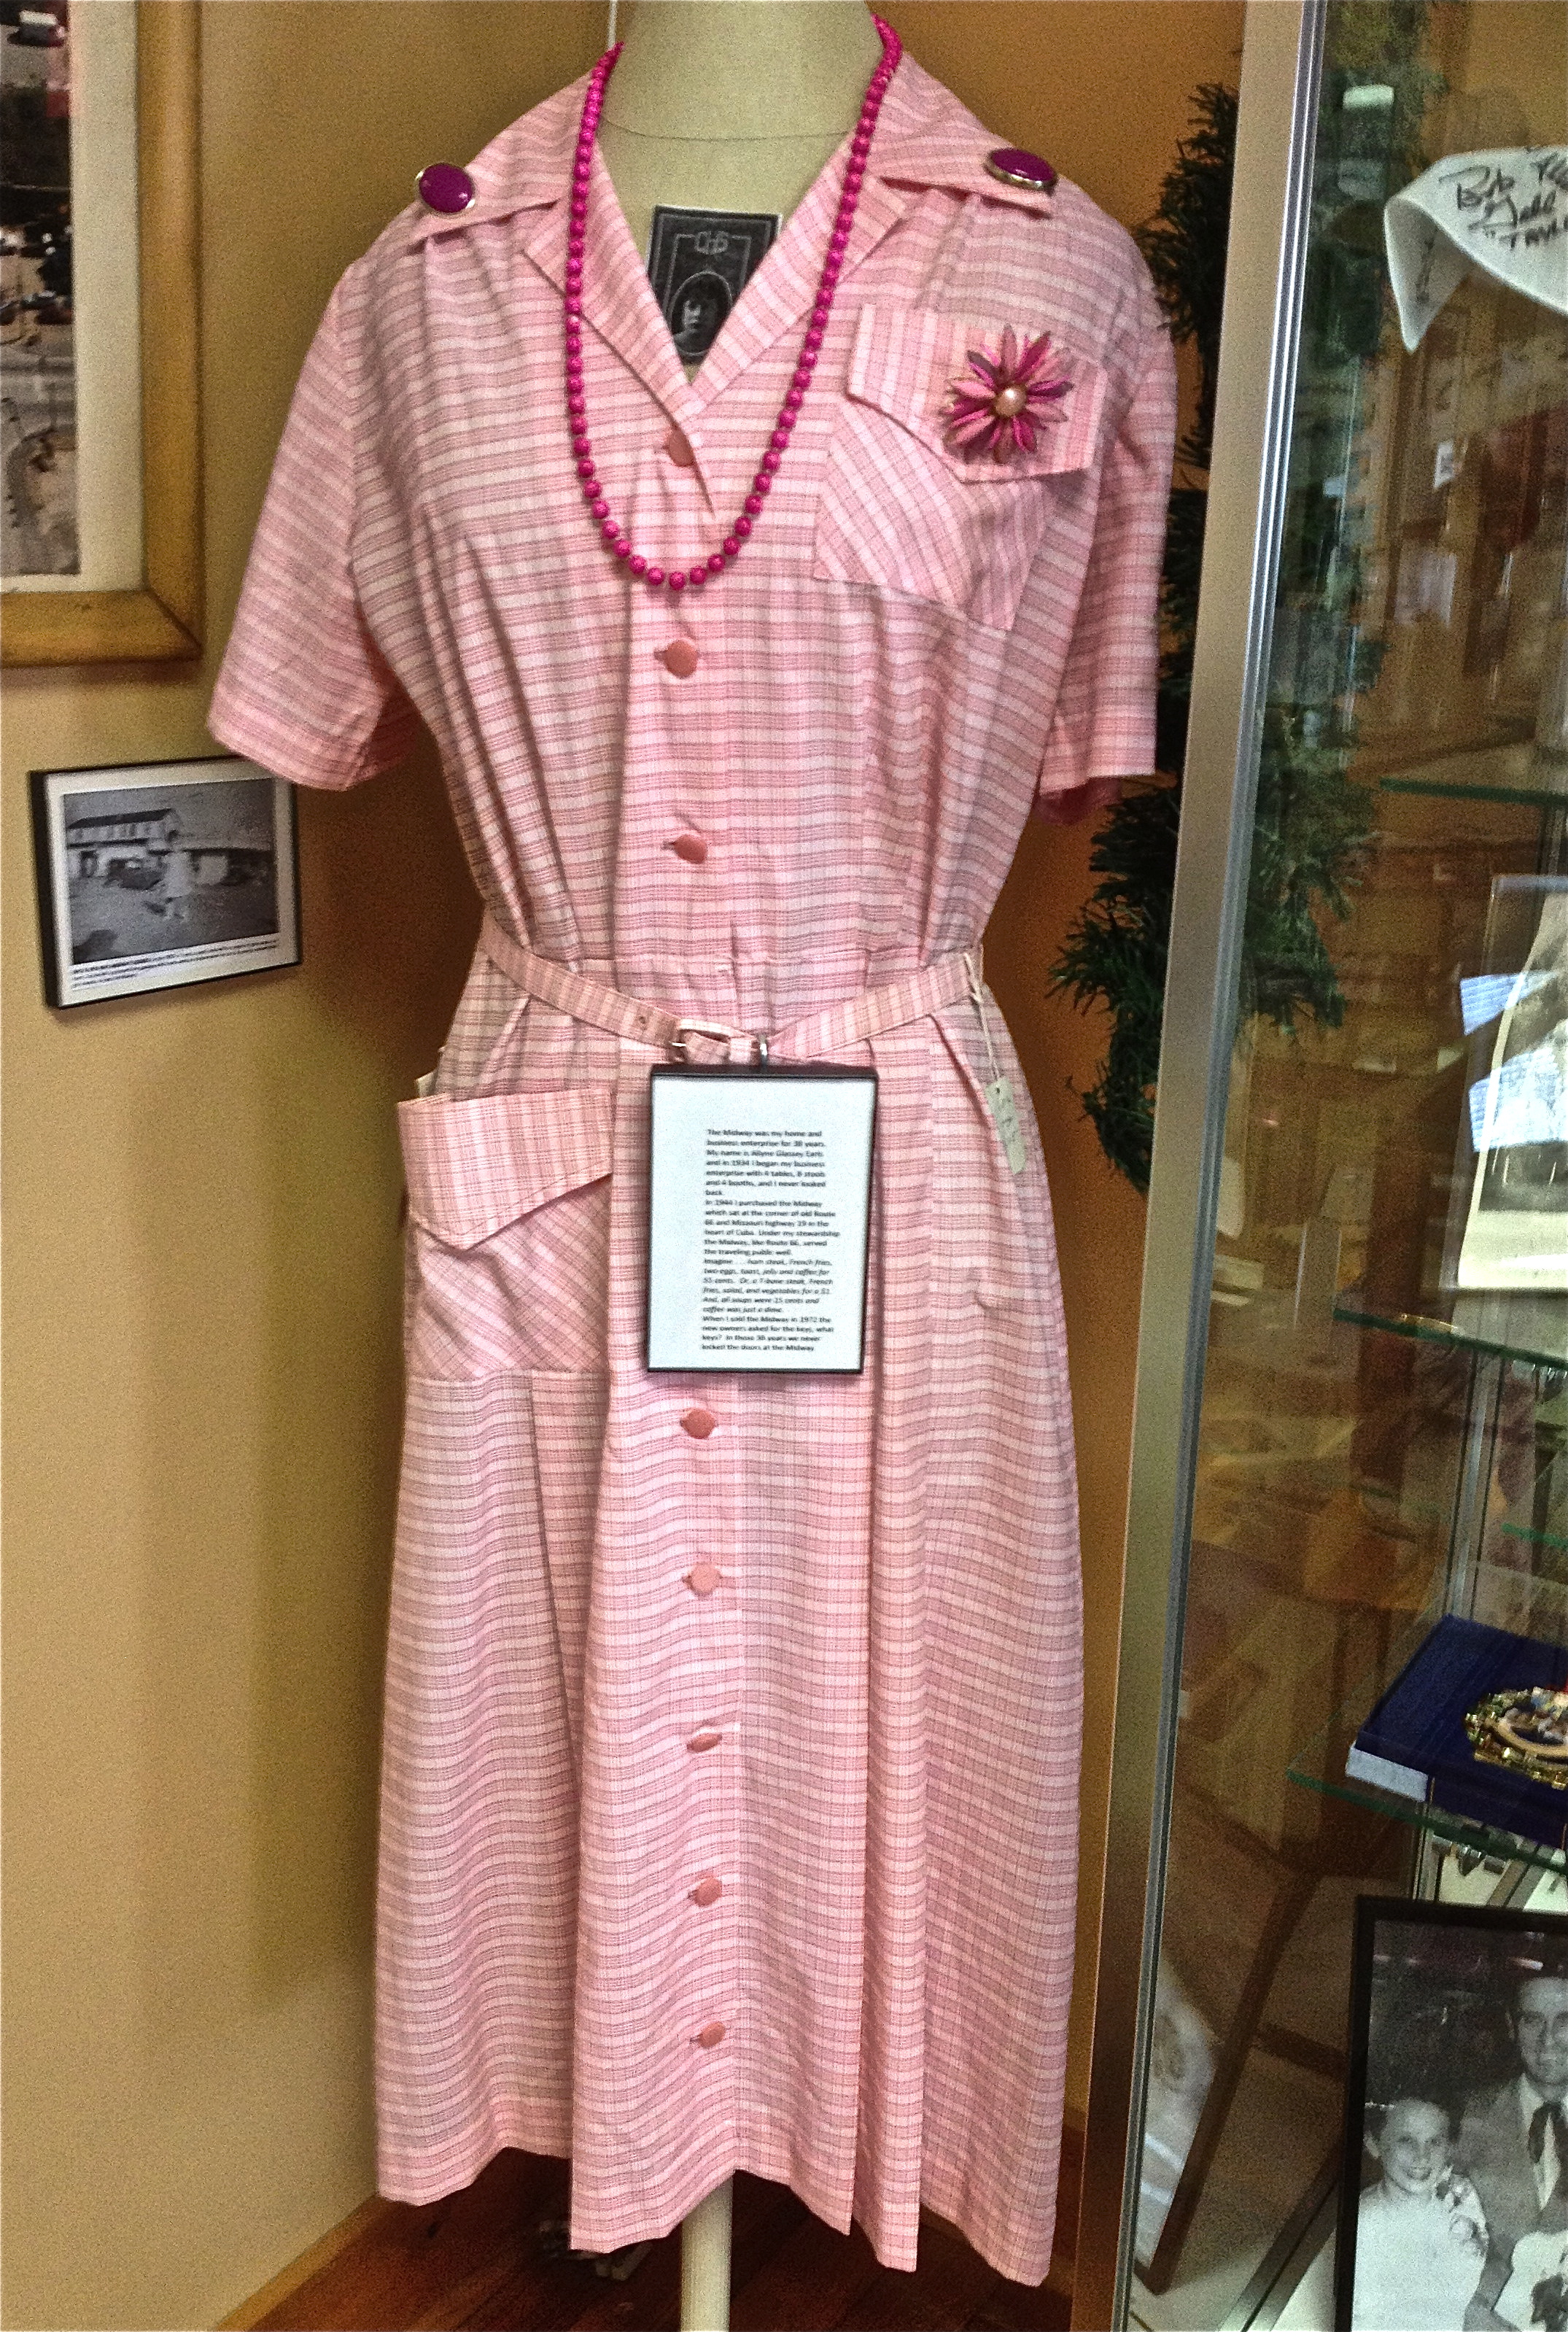 Cuba History Museum Allyne Earls uniform